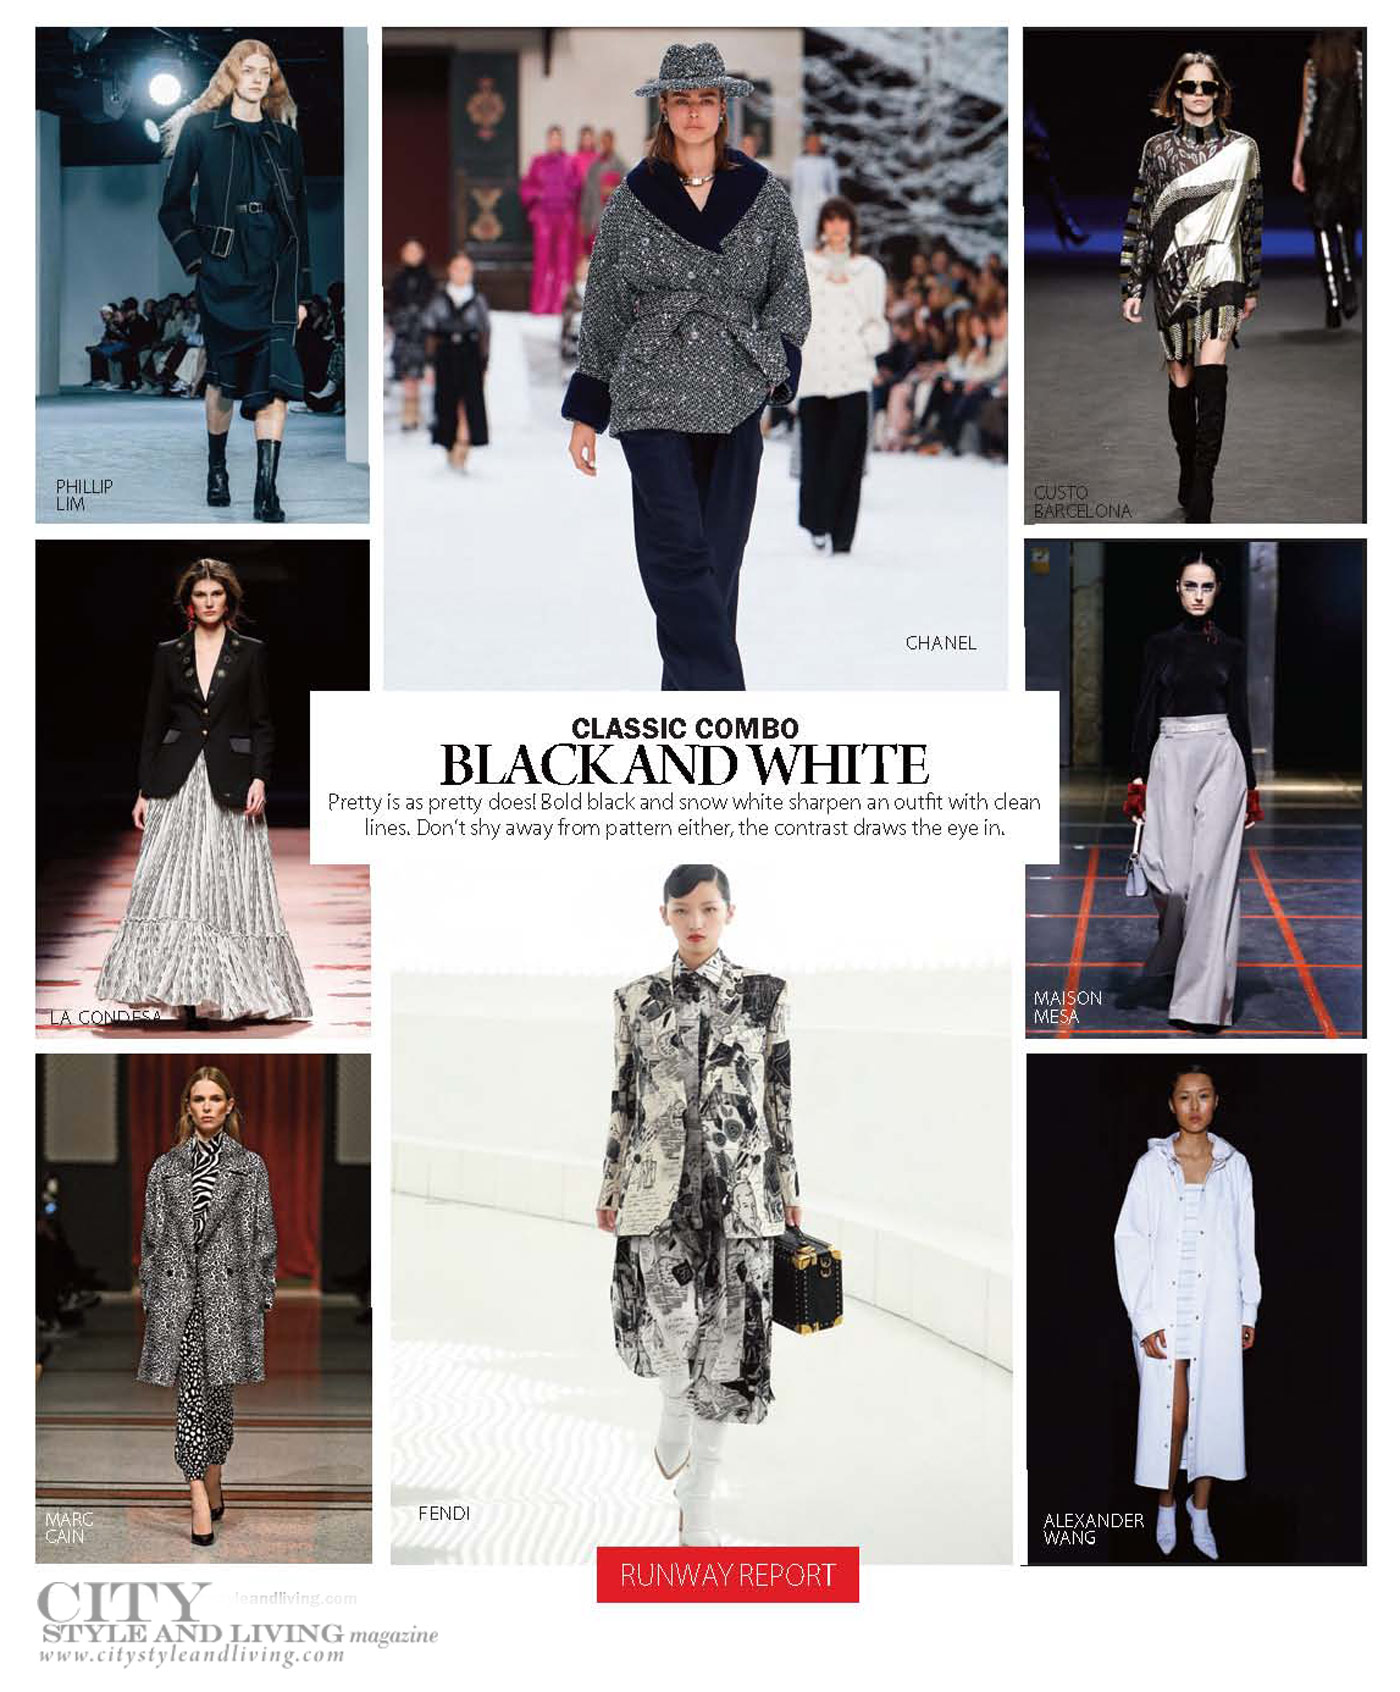 City Style and Living Magazine Fashion Fall 2019 black and white